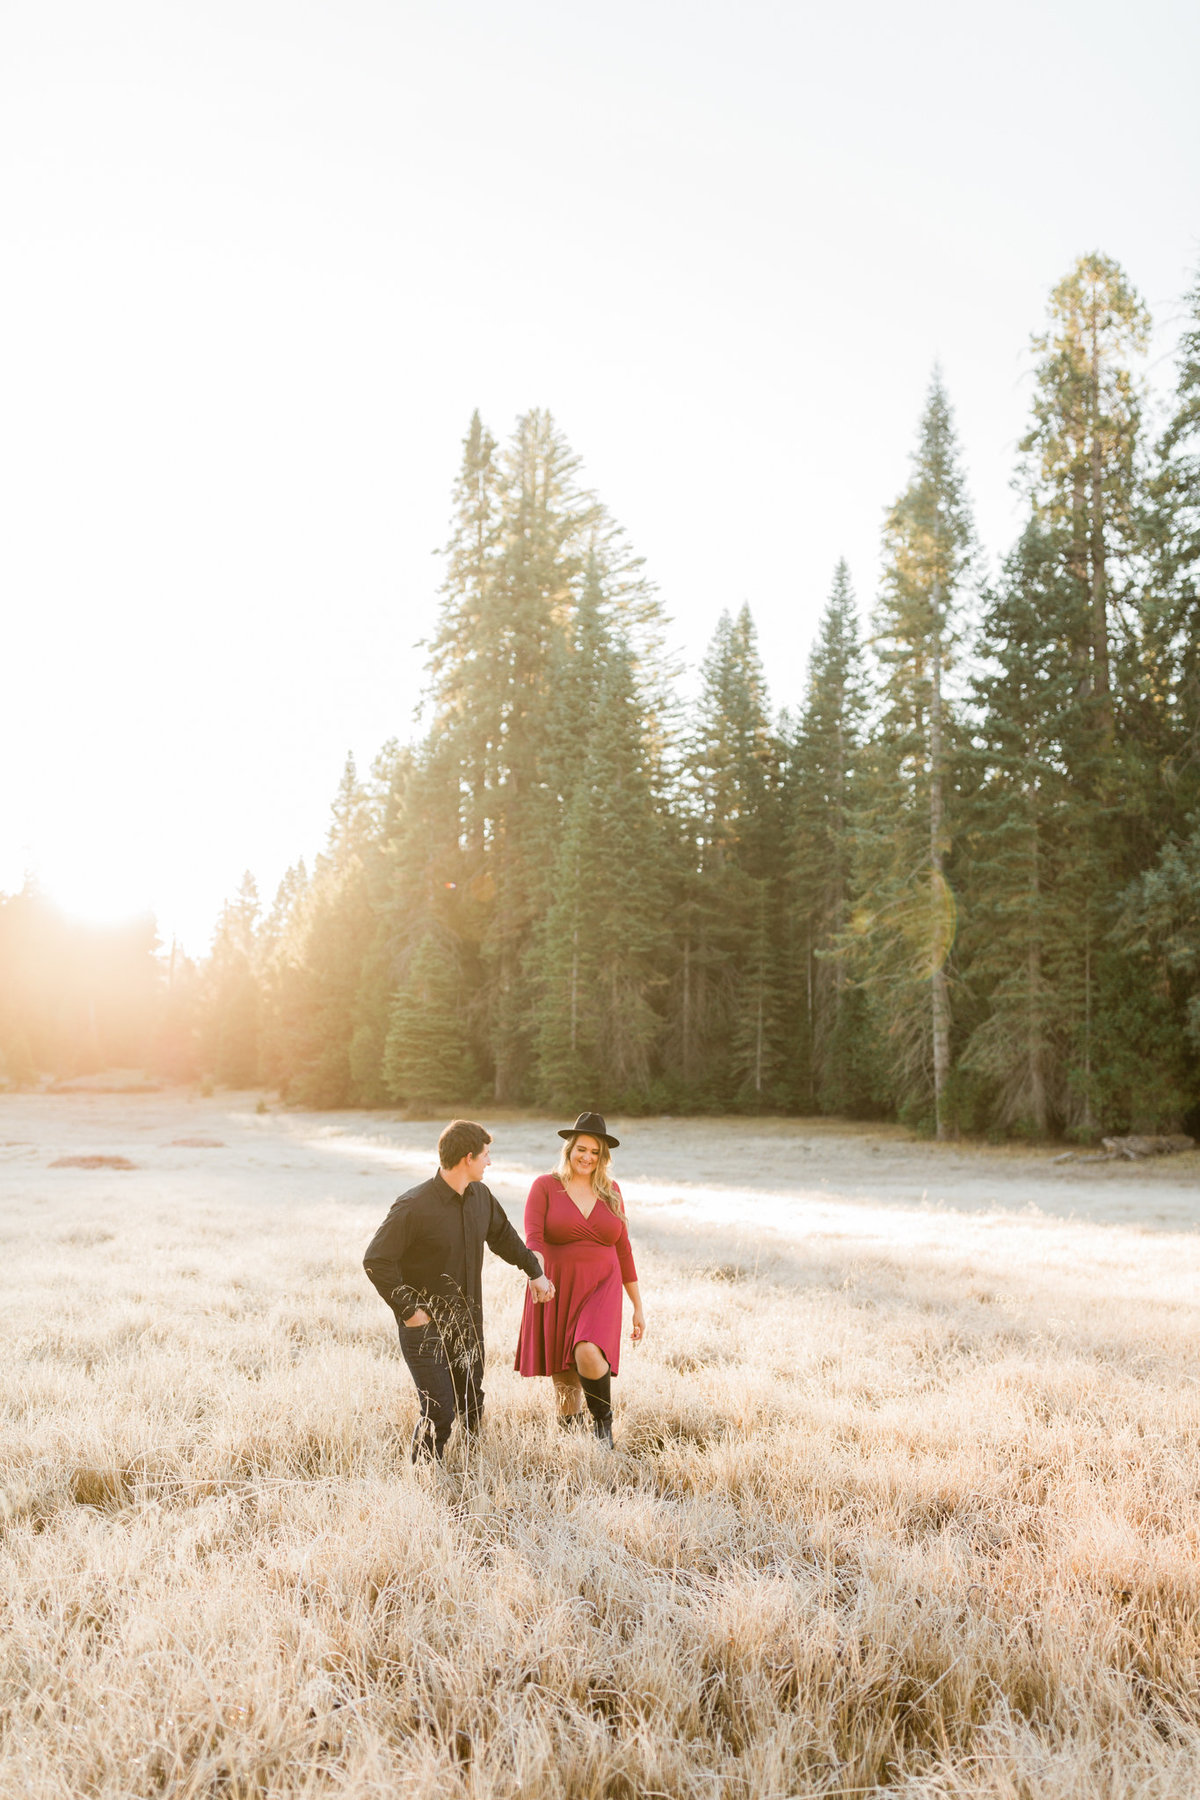 couple holding hands and walking through a grassy meadow